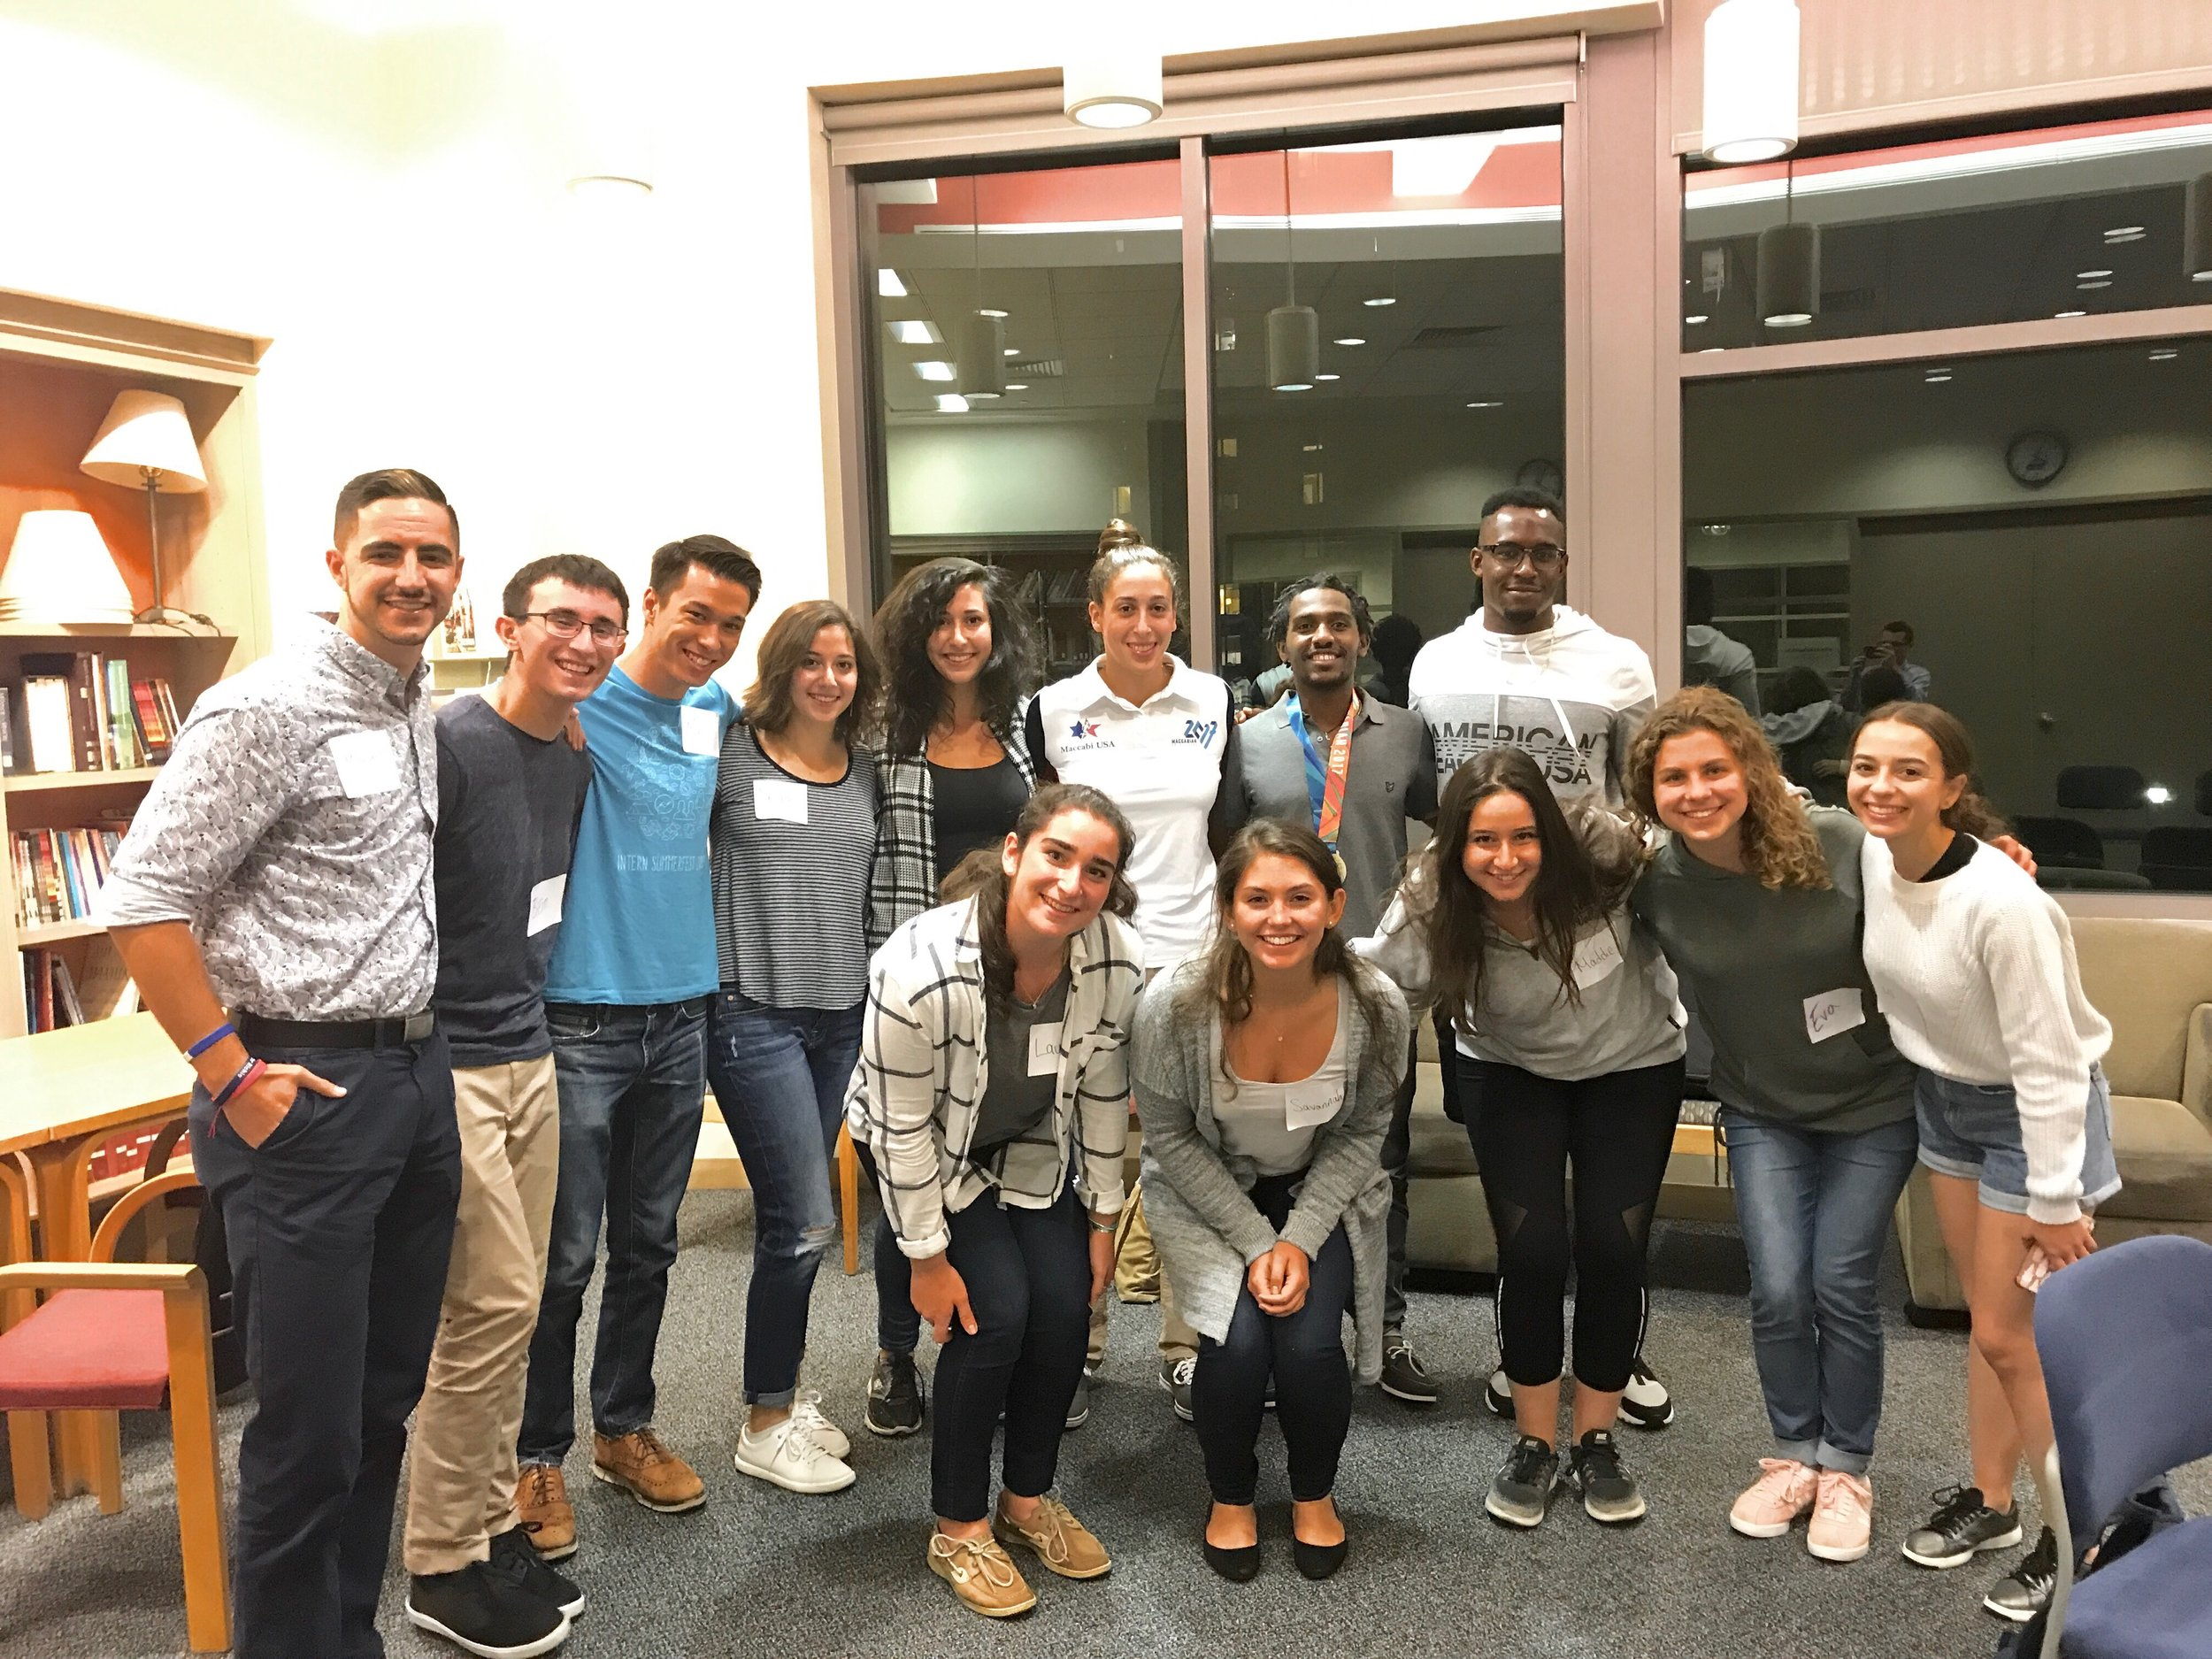 Students at the University of Pennsylvania held their first team meeting as part of a new initiative known as the Israel Learning Lab.